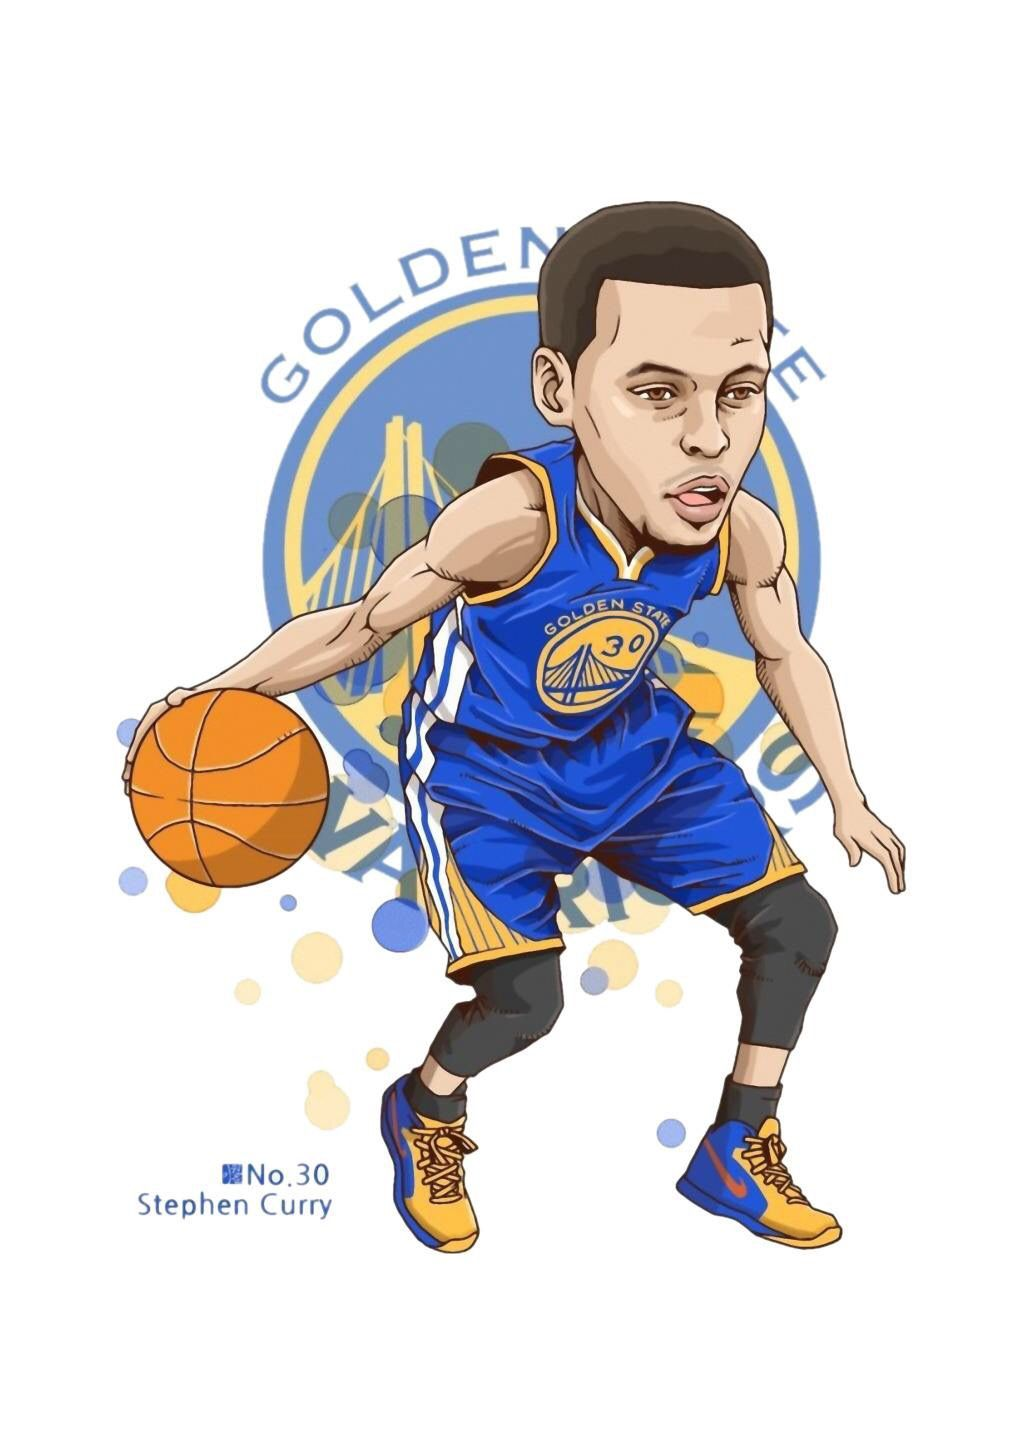 Pin on Stephen Curry and NBA